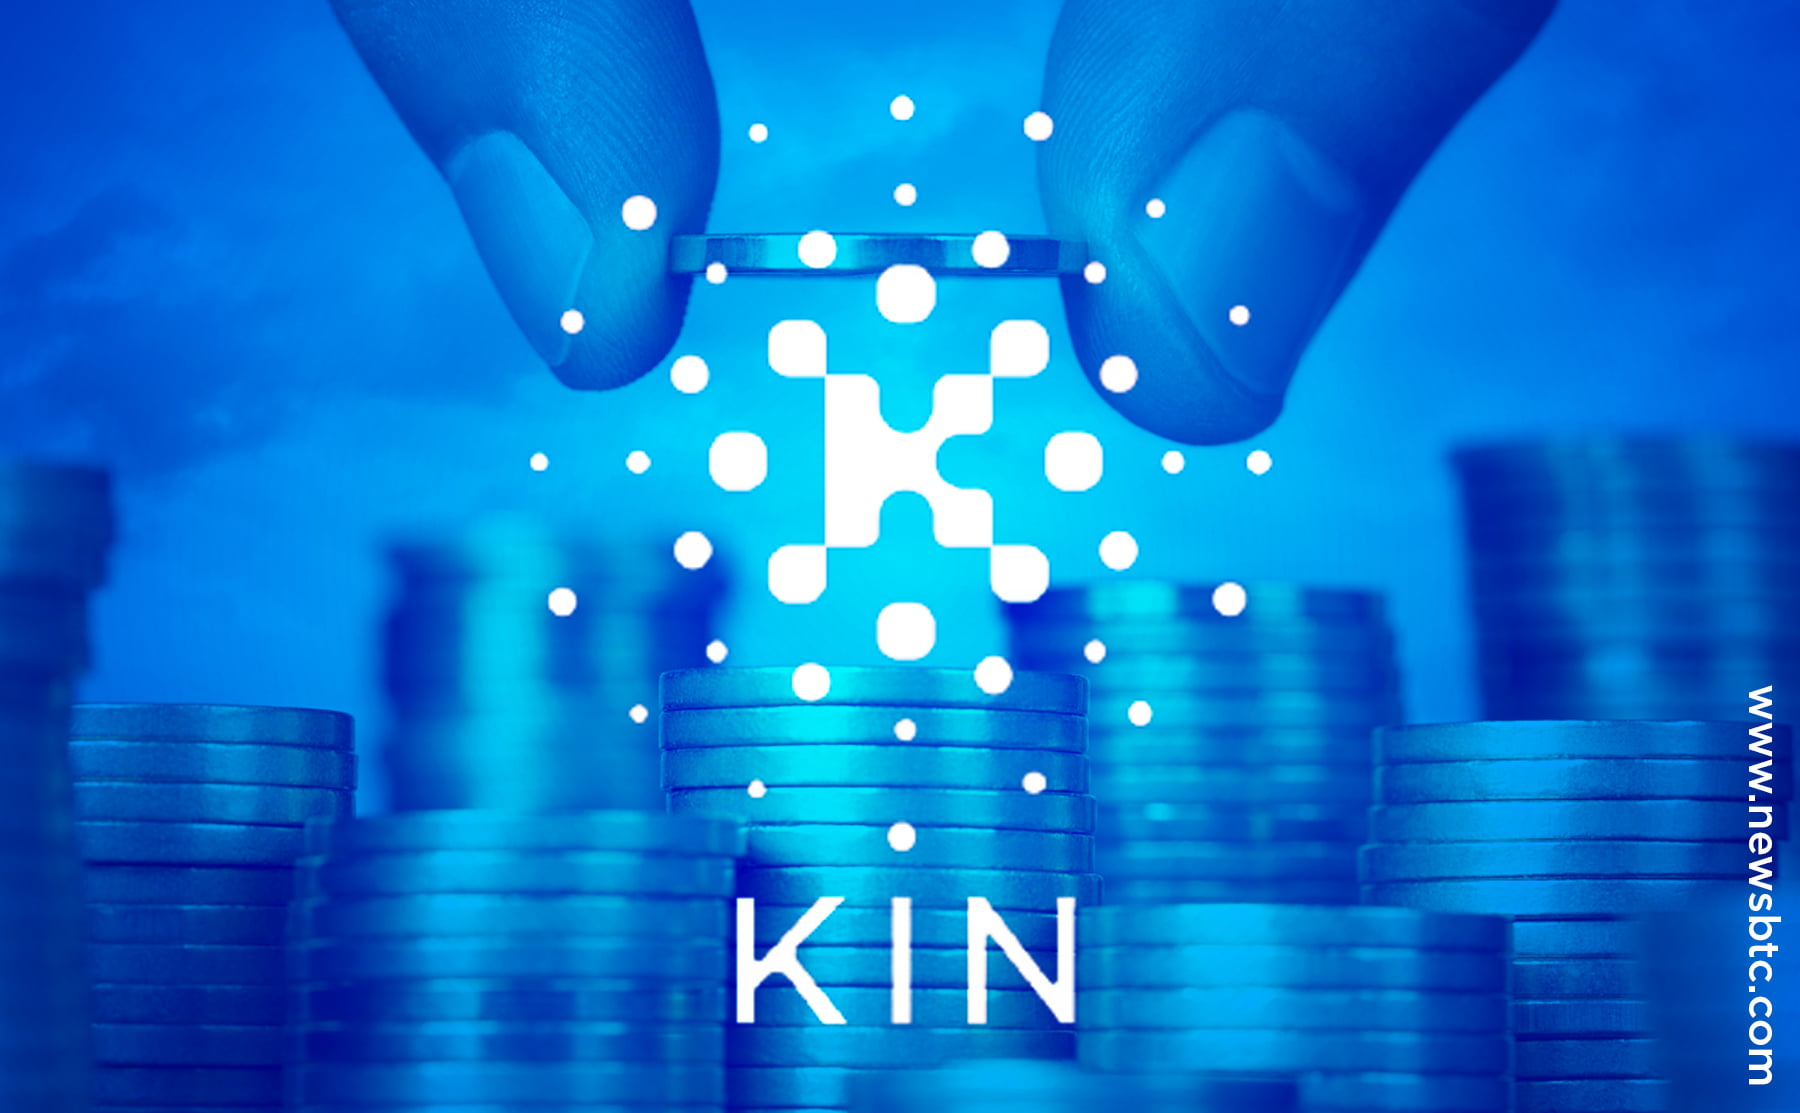 kin kik cryptocurrency